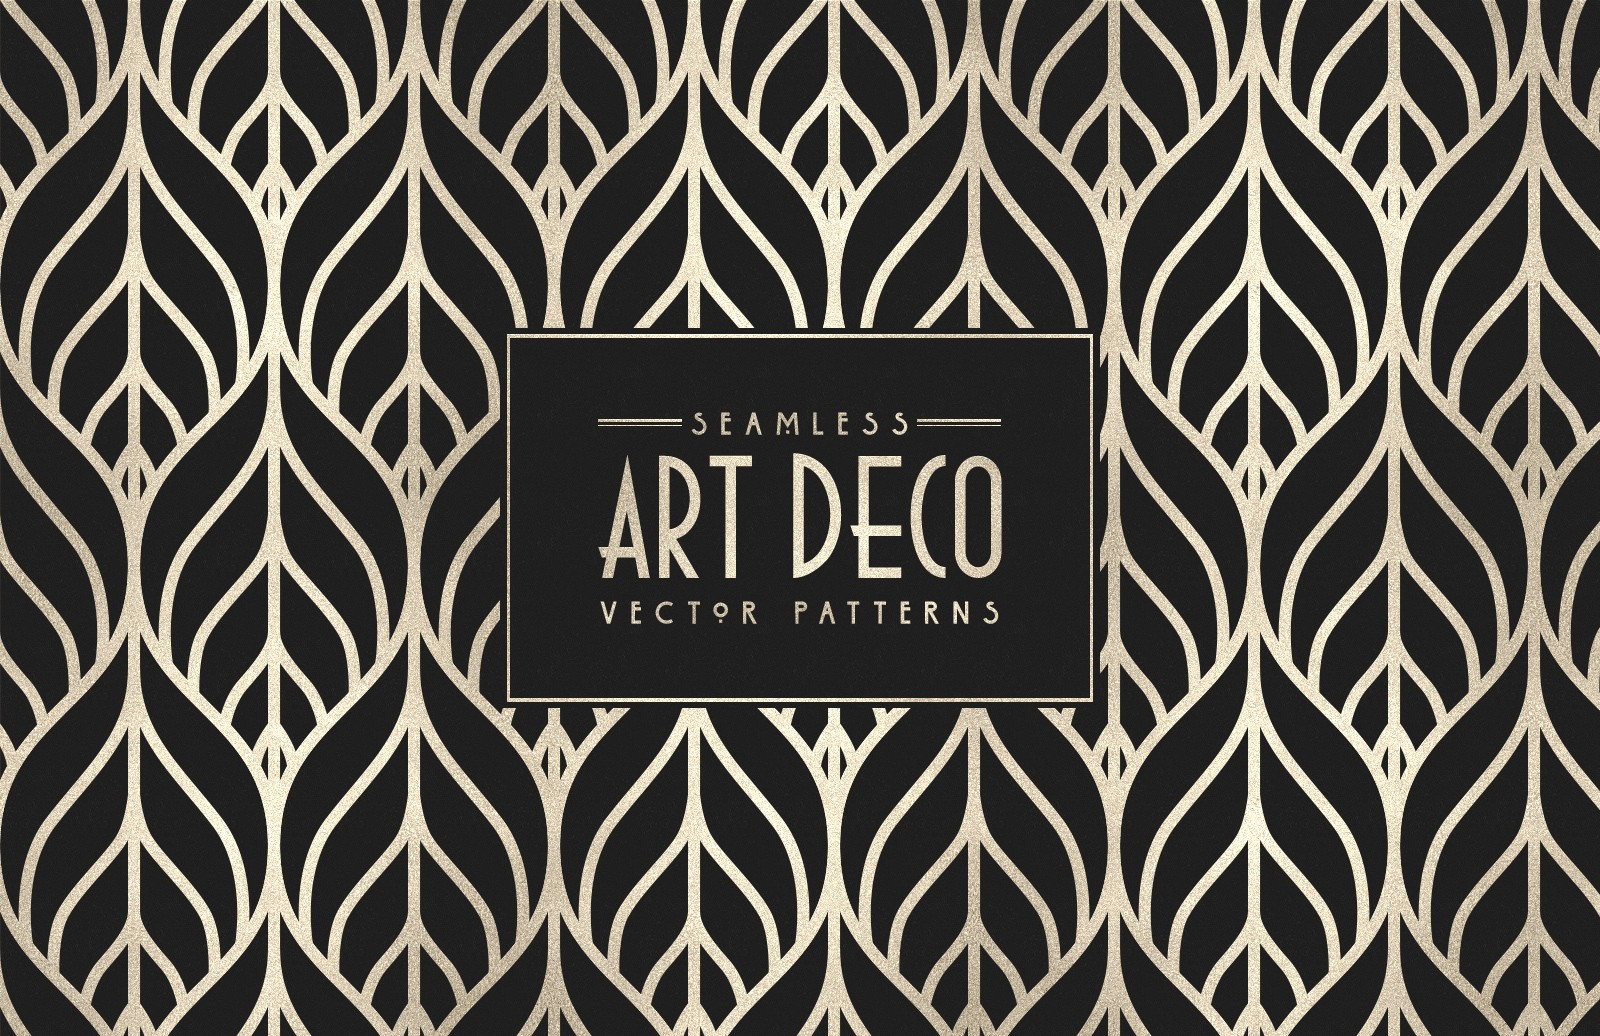 Seamless Art Deco Vector Patterns (Updated)